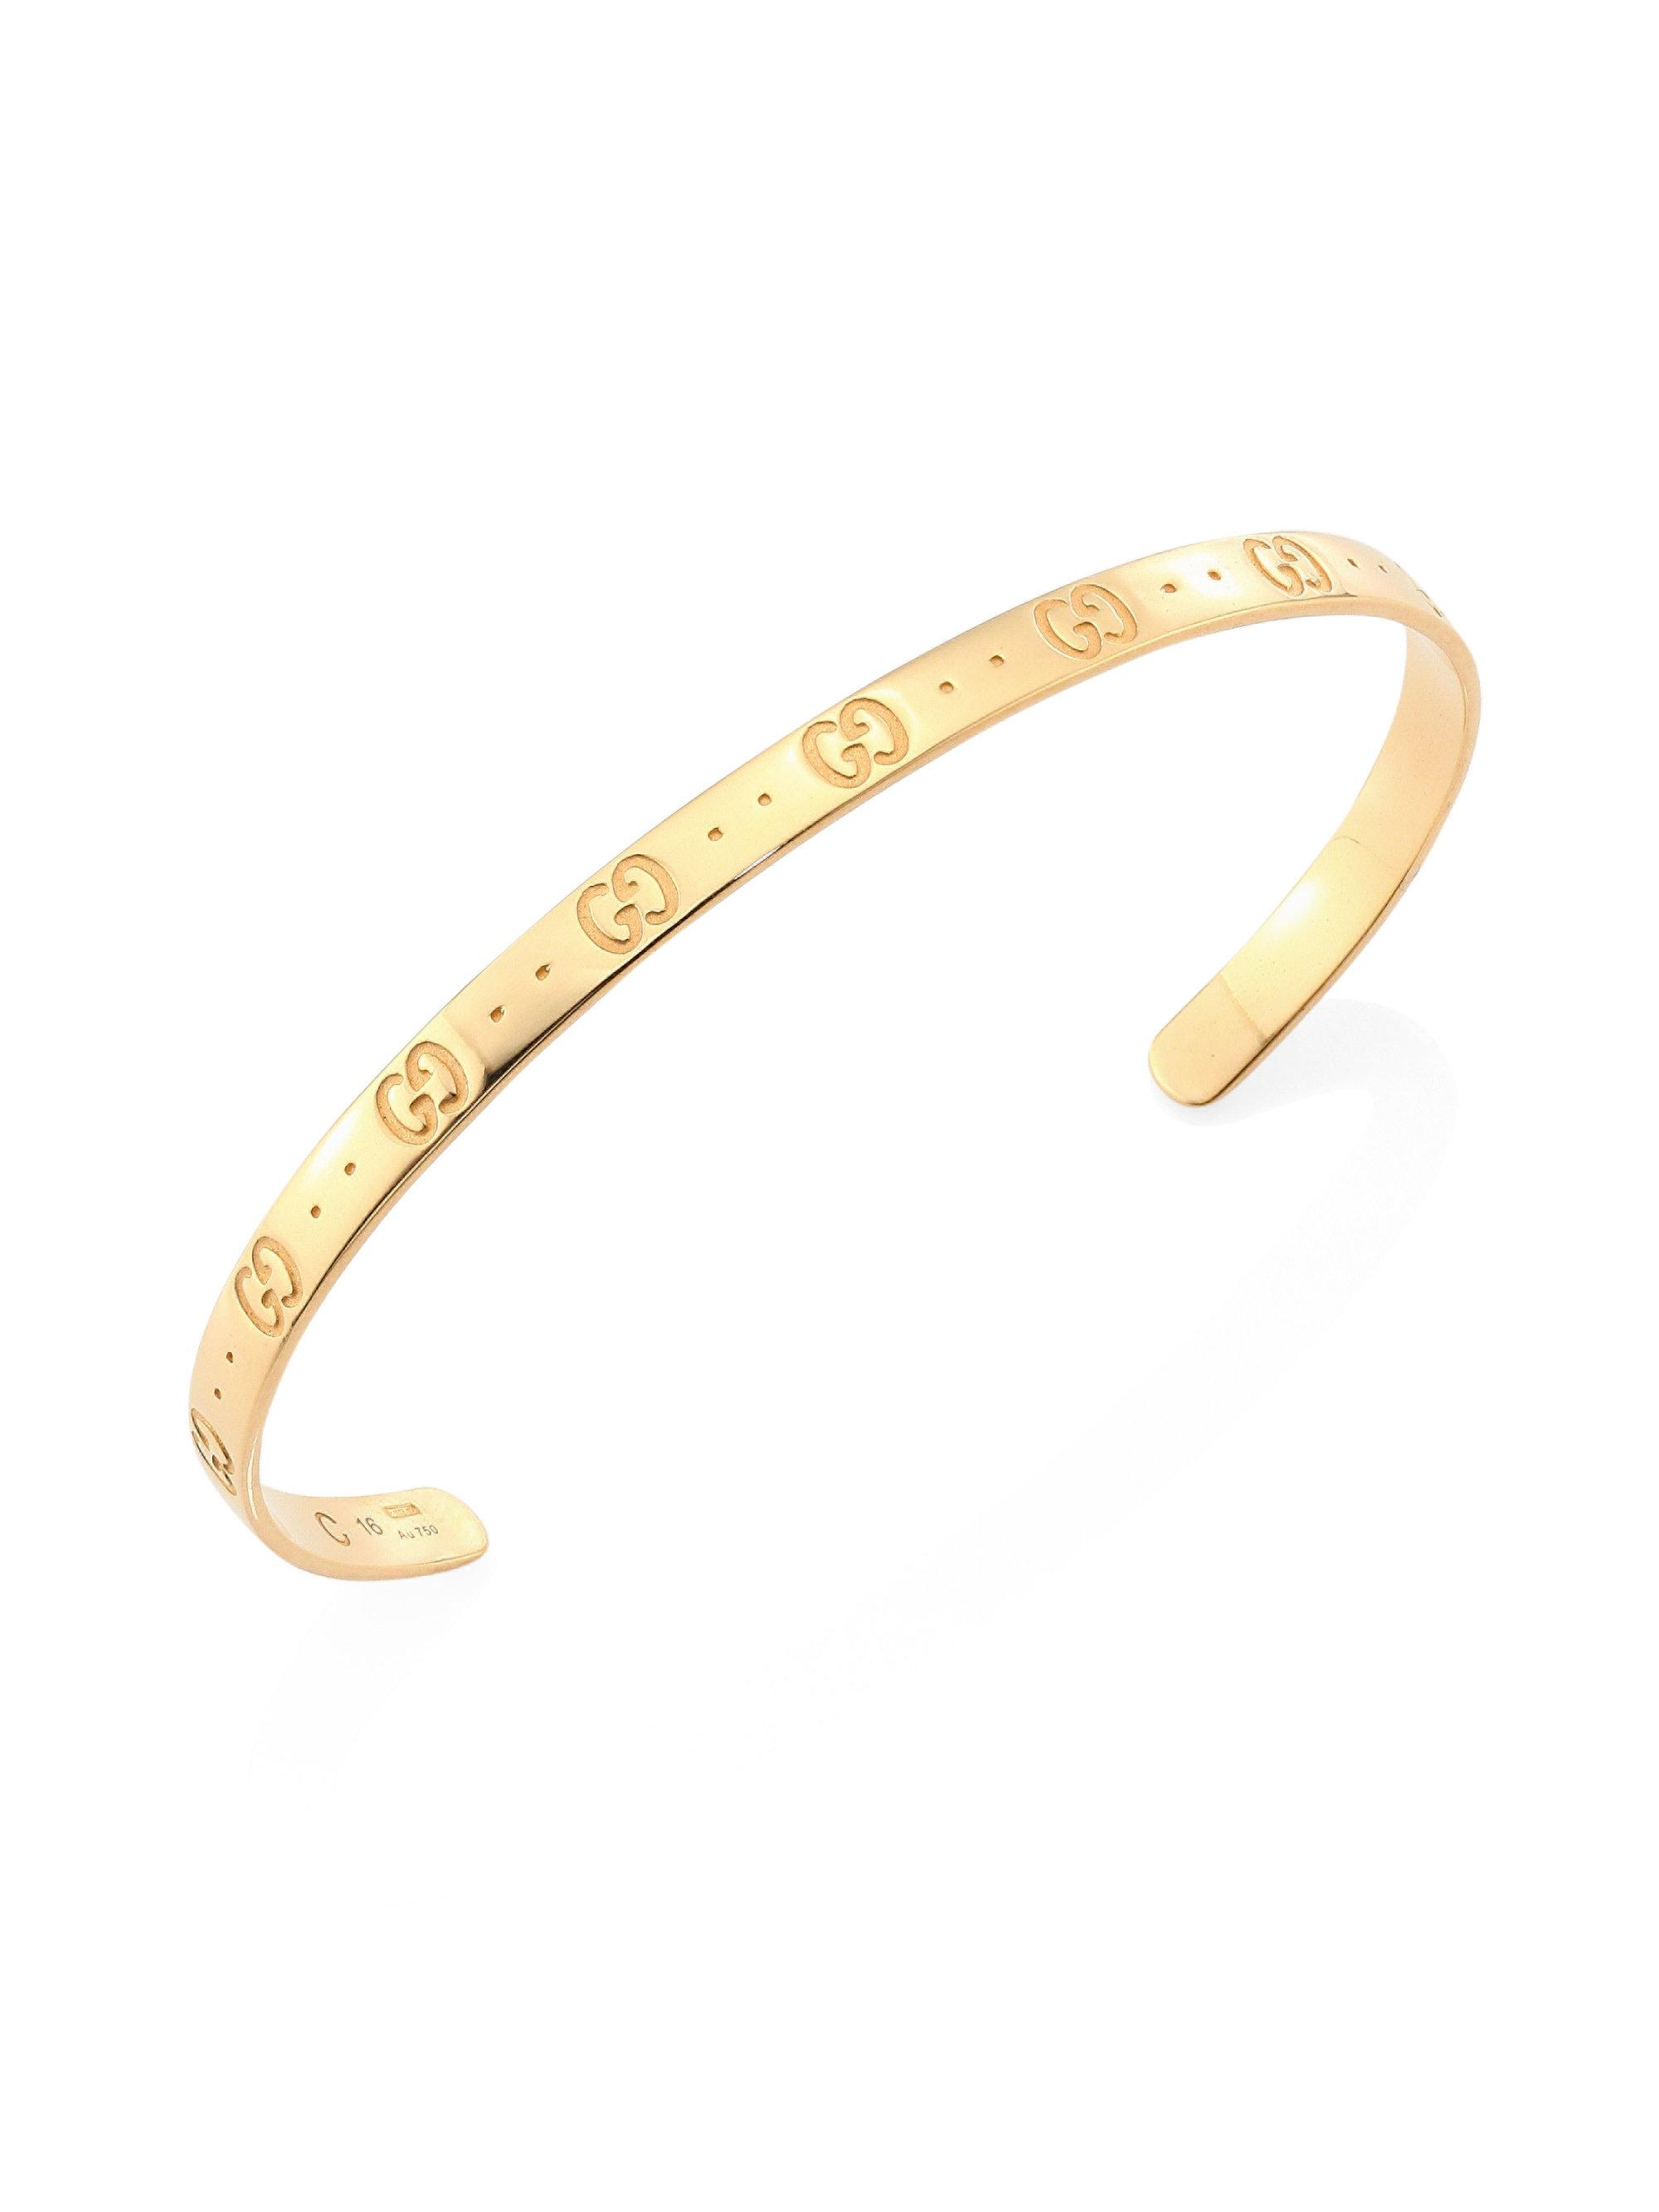 jewelry sapphires bracelet cut machine product bangle bangles in modern bracelets estate home fine yellow round gold